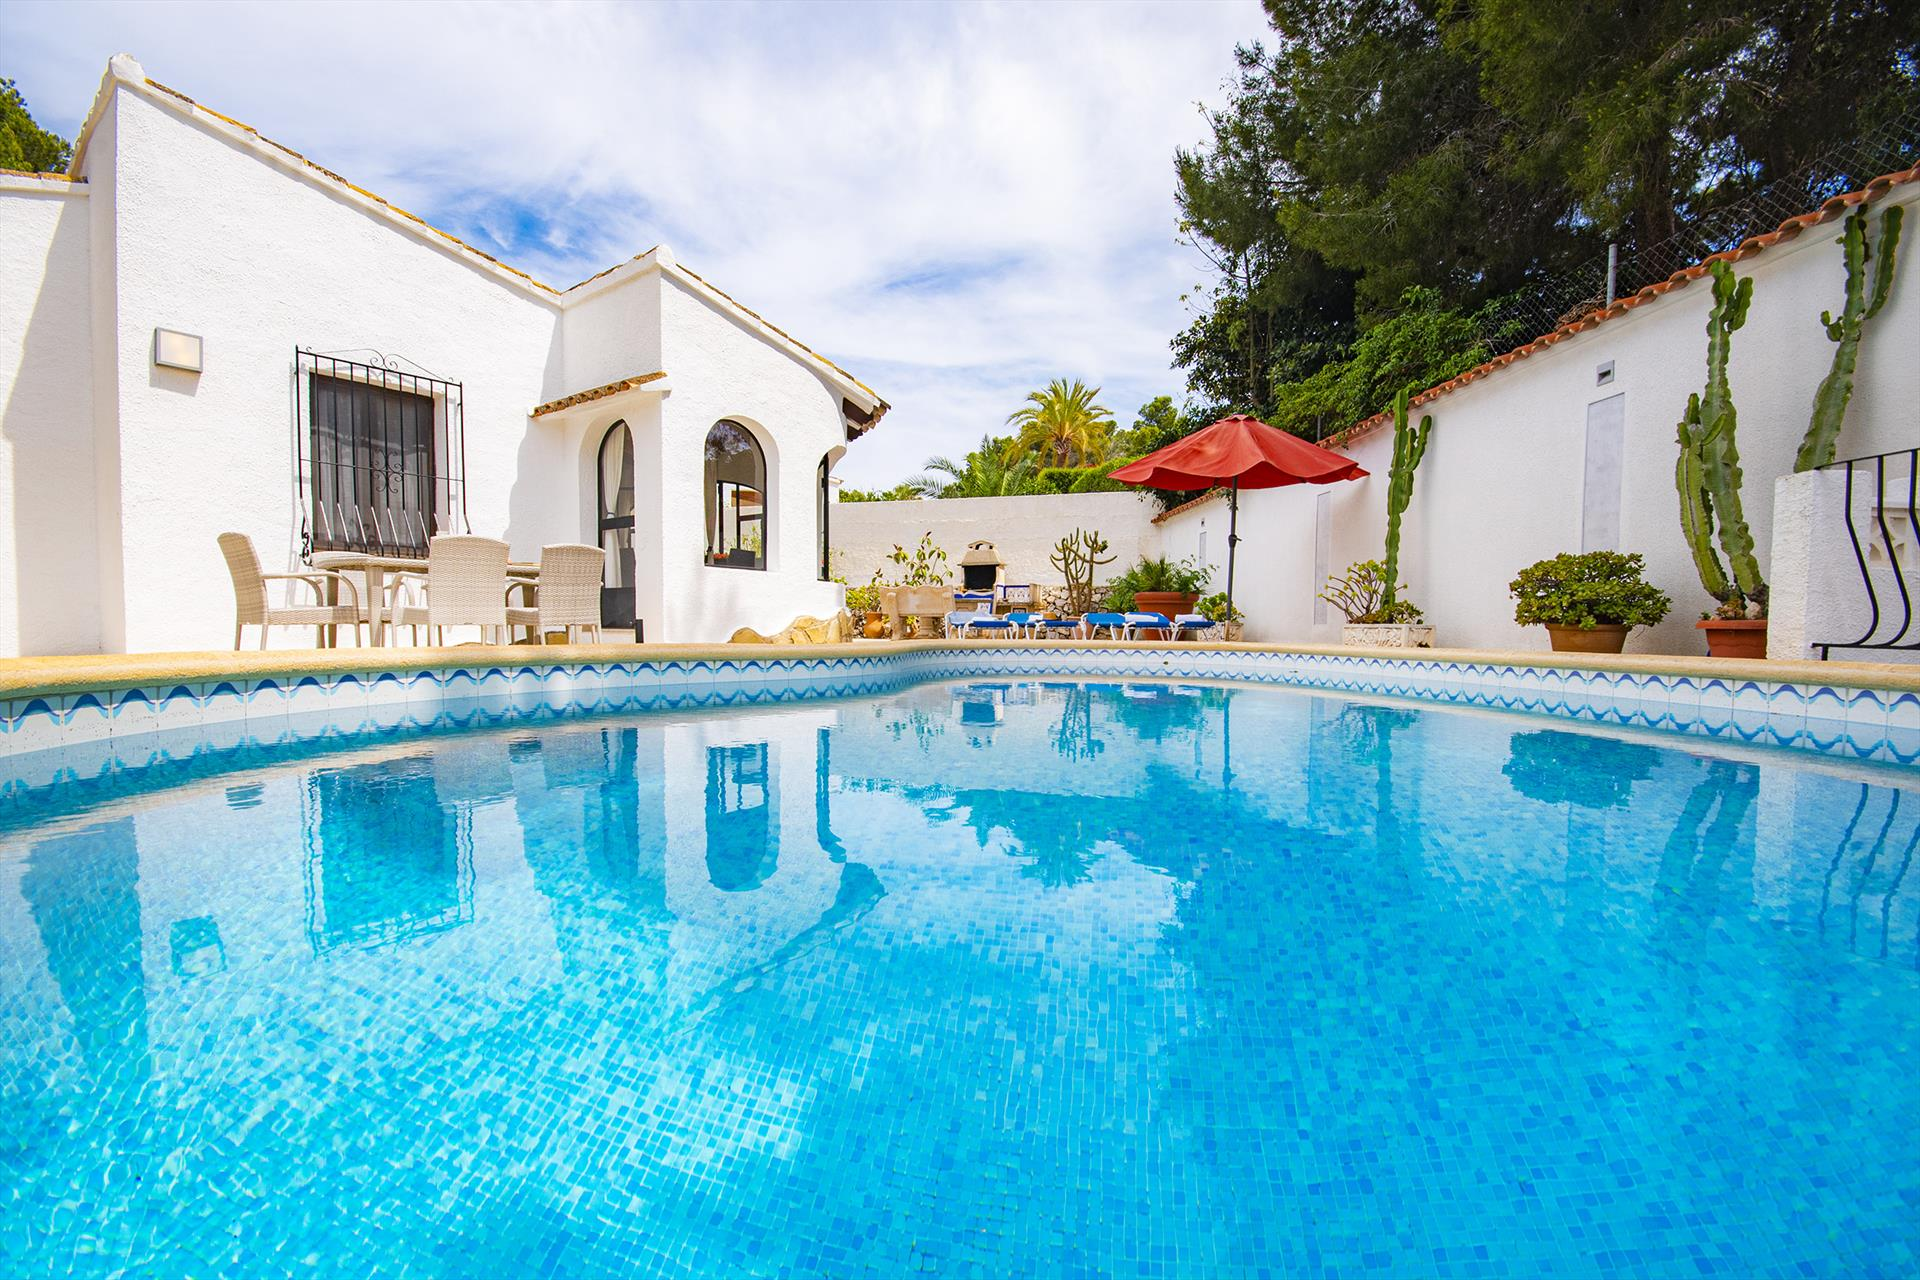 Yvonne, Classic and romantic villa in Benissa, on the Costa Blanca, Spain  with private pool for 4 persons.....